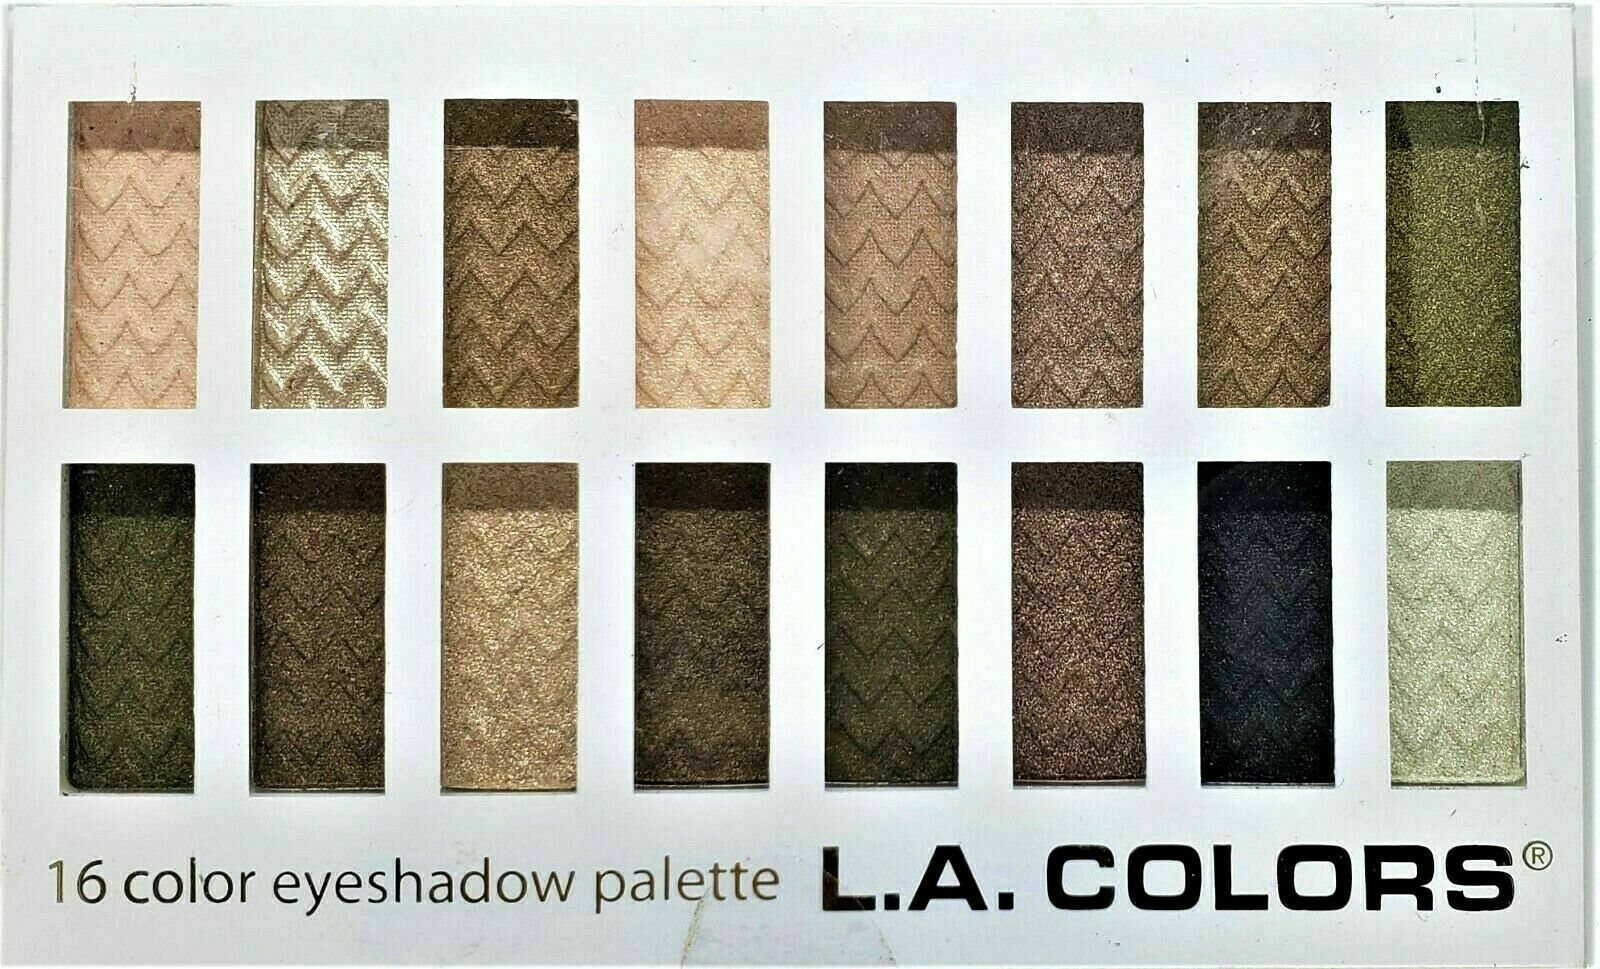 Primary image for L.A. Colors 16 Color Eye-shadow Palette, #74201 Sweet